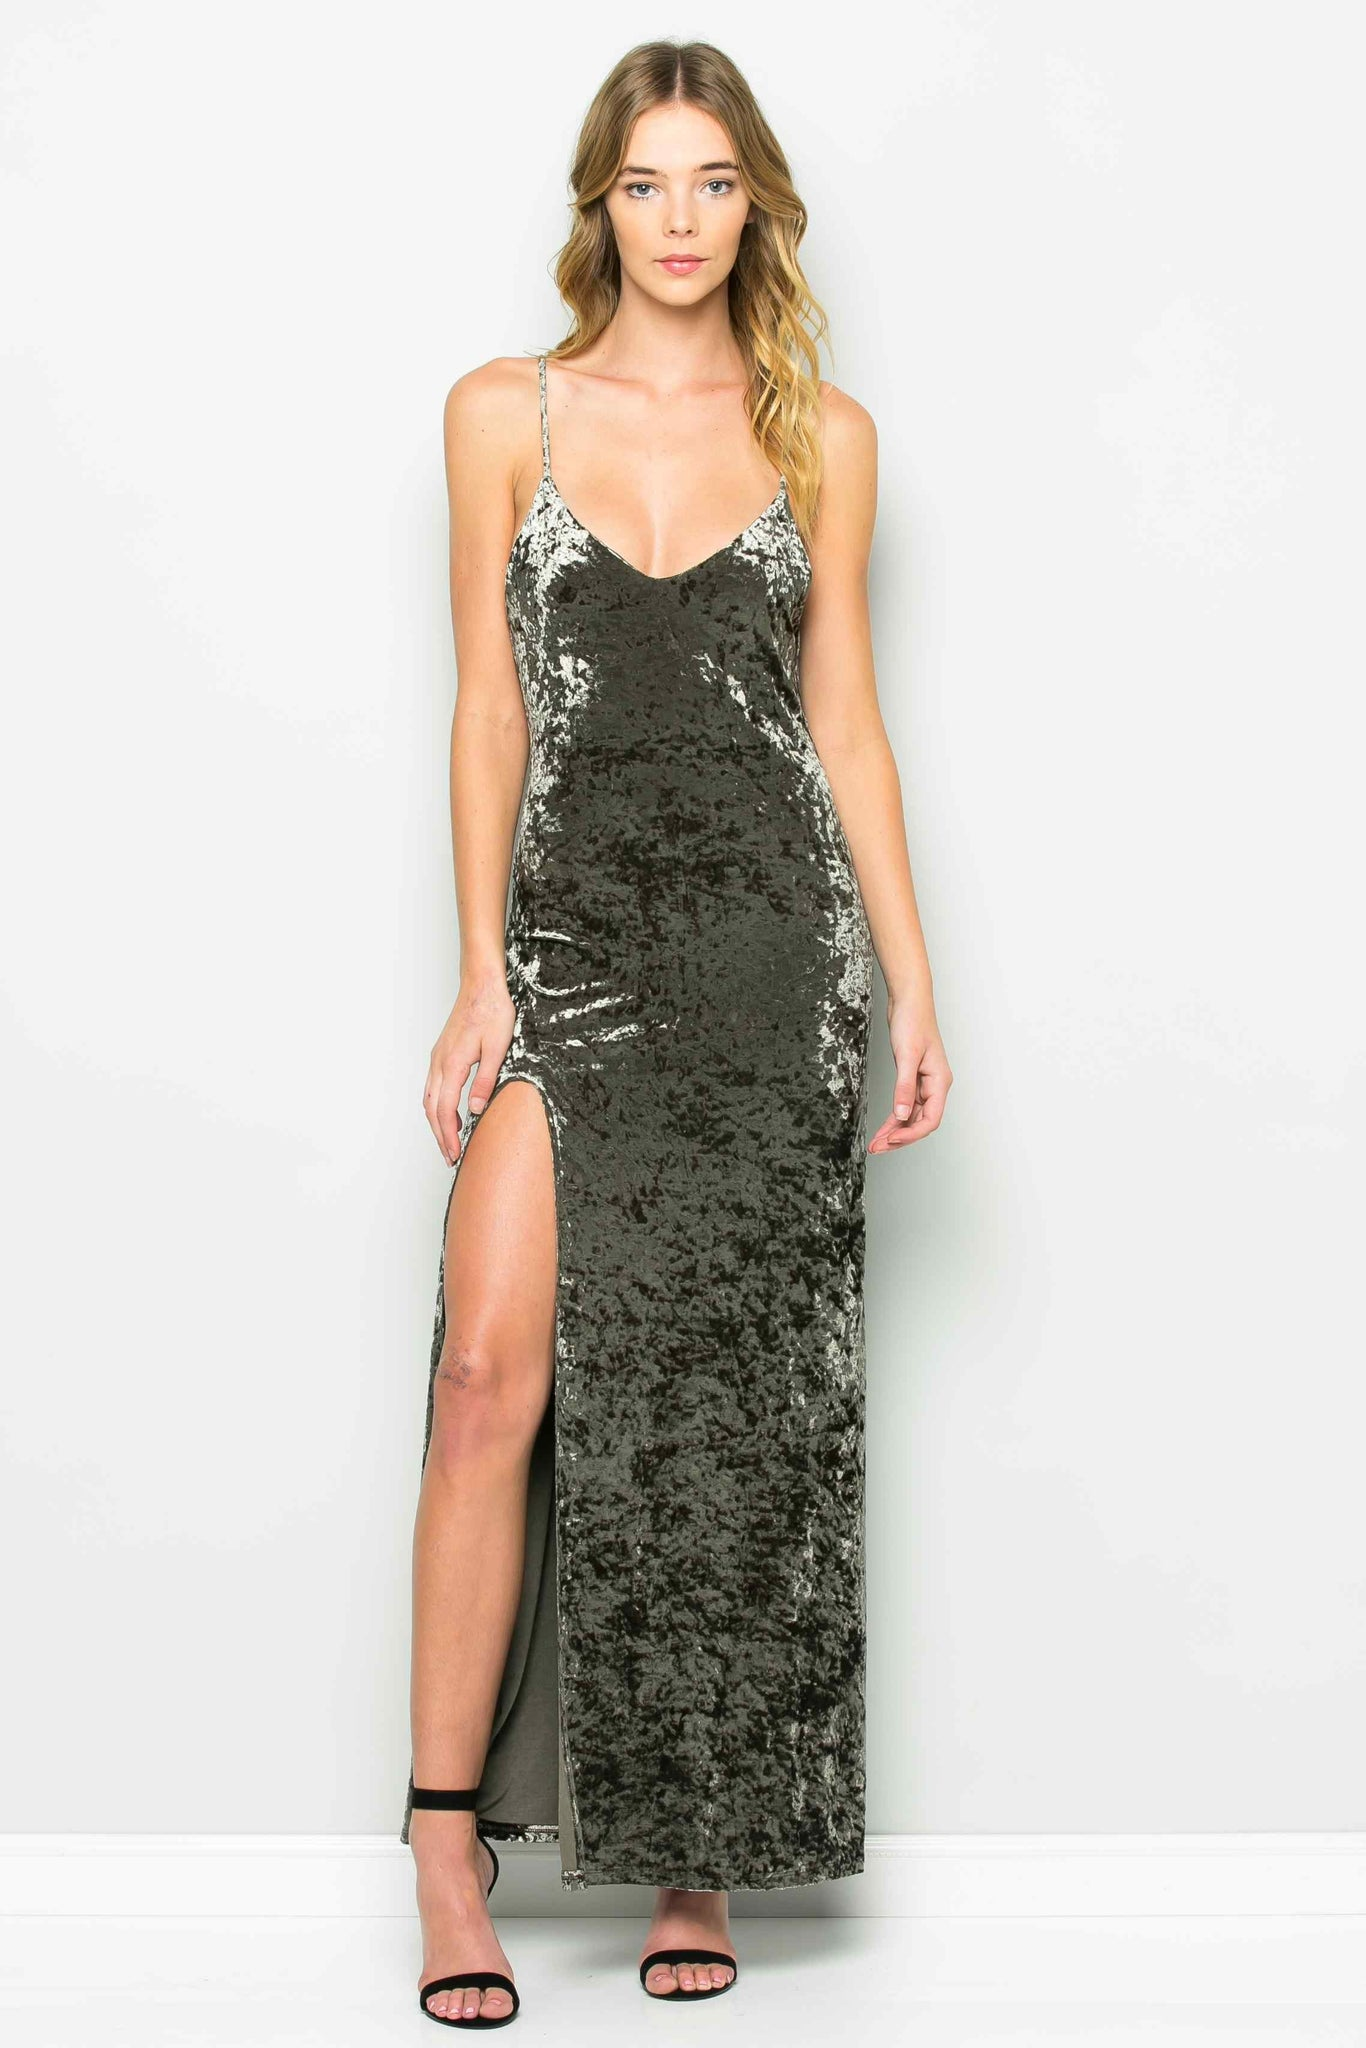 Crushed Velvet High Slit Strap Dress (Olive)